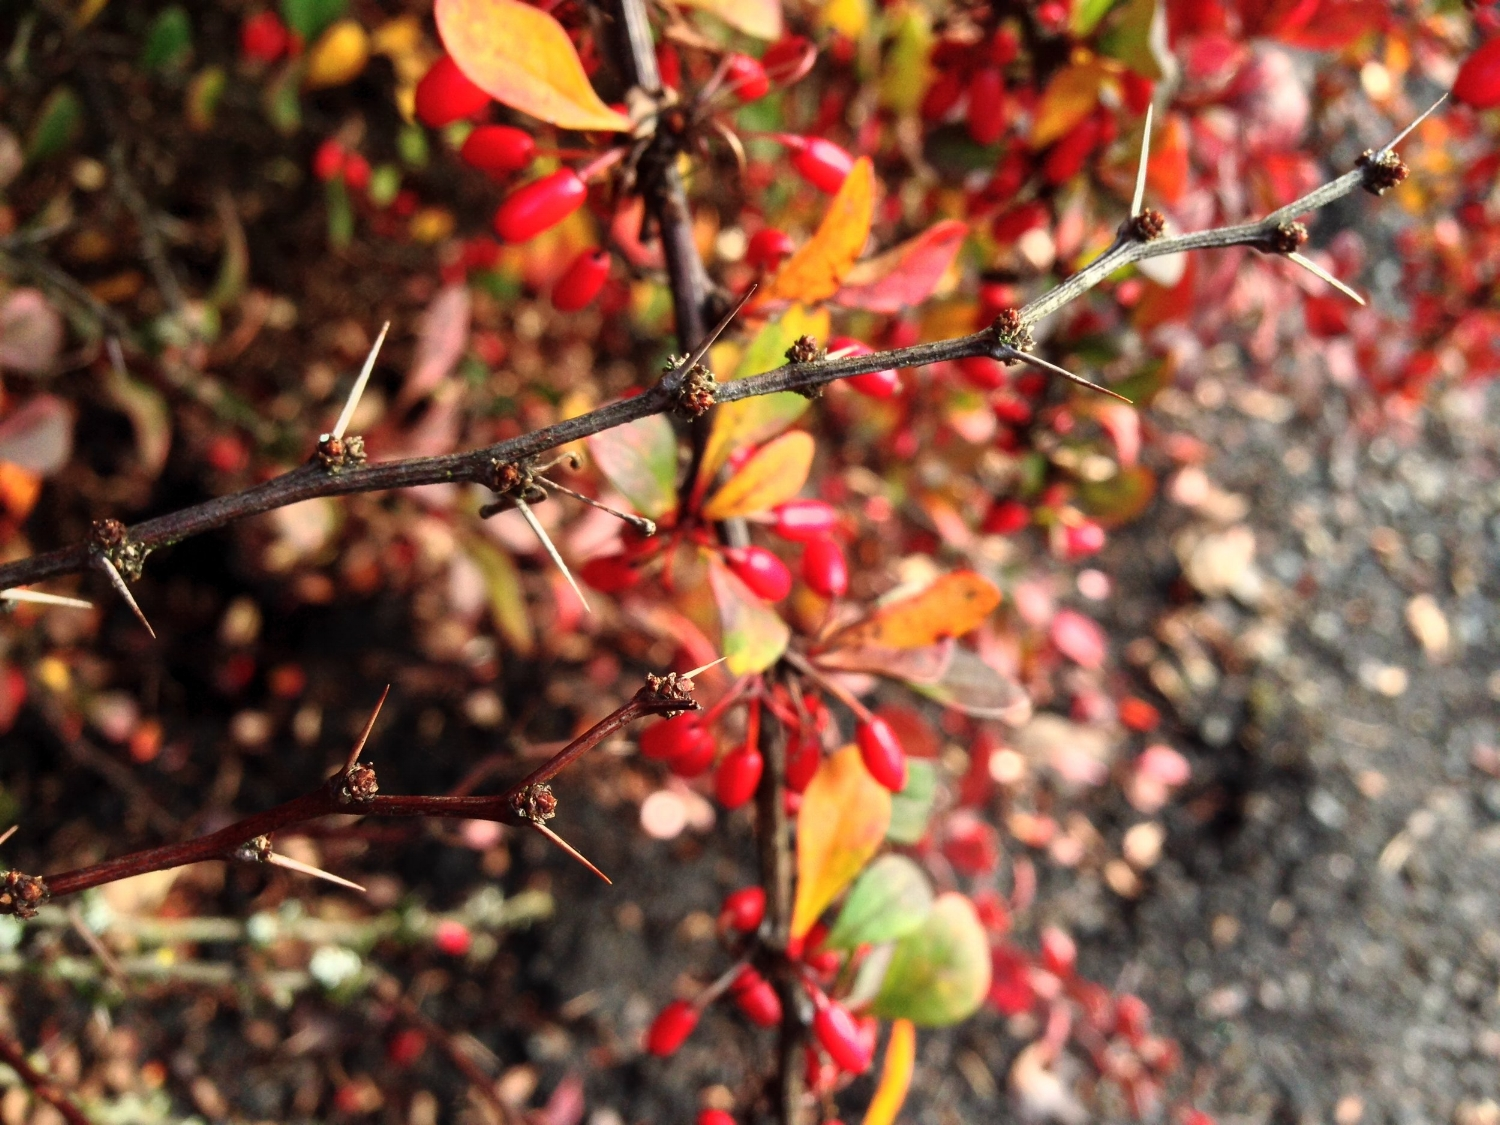 Berberis thunbergii 'Rose Glow'bare limb showing needle-like thorns. Fall color and berries remain on branches in background.